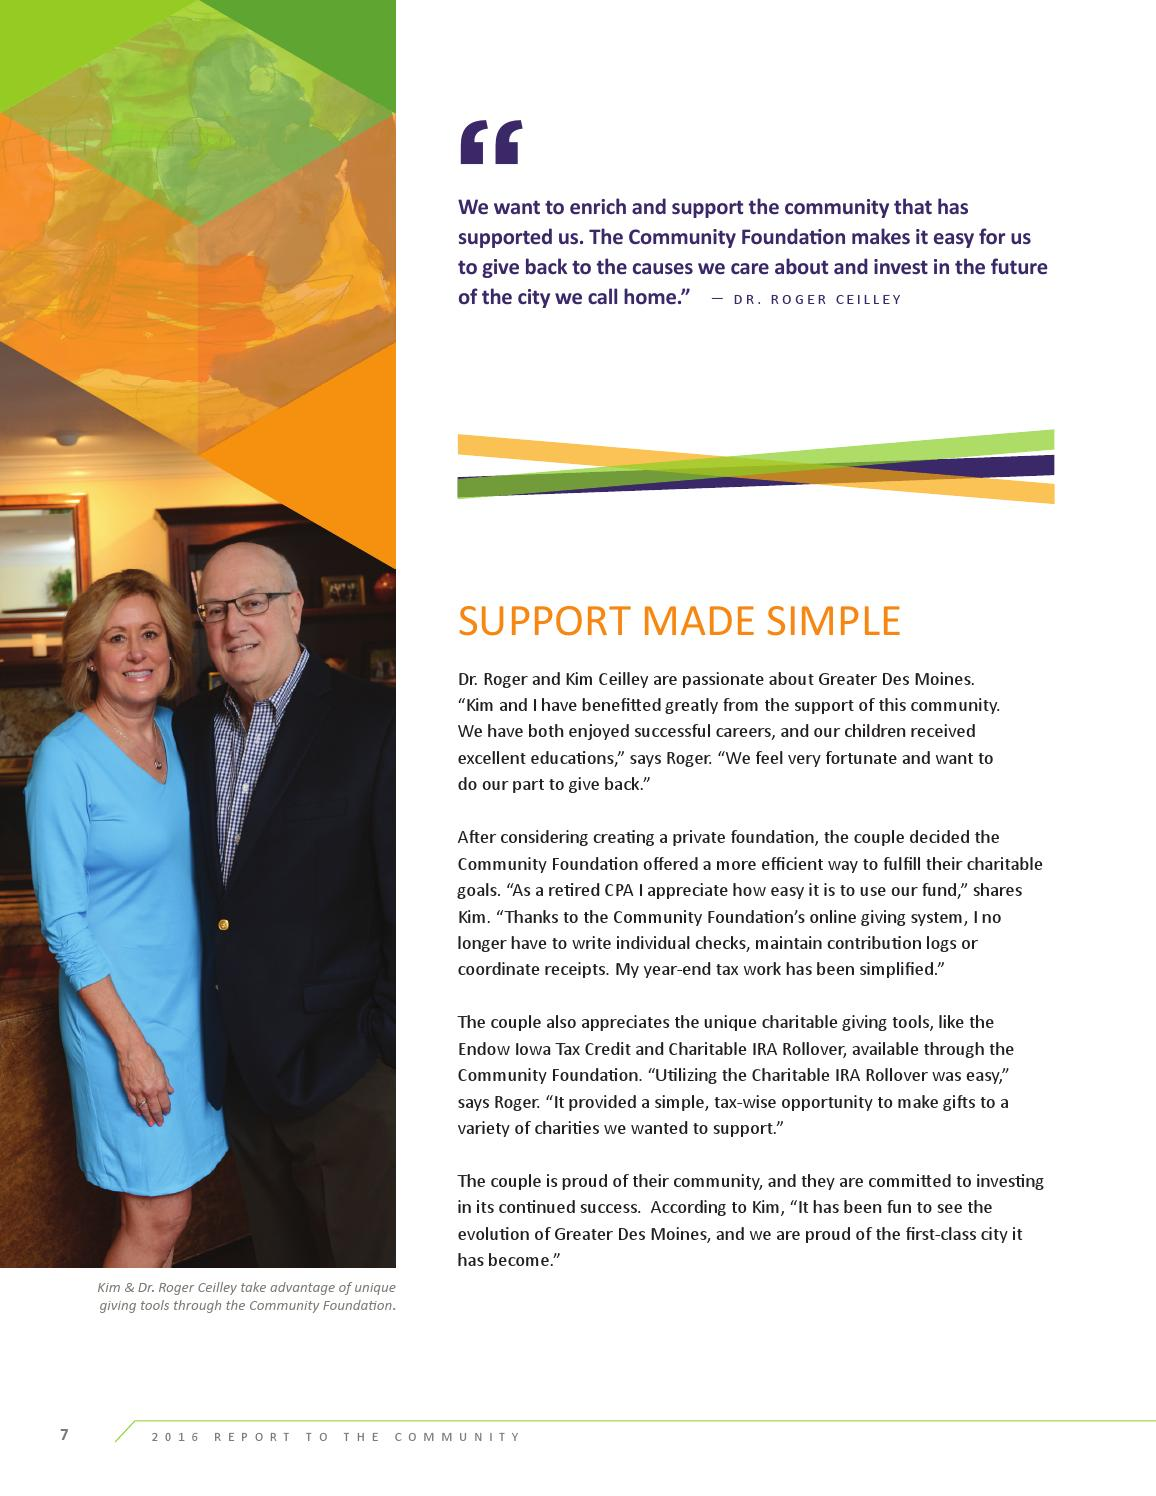 community foundation of greater des moines 2016 report to the